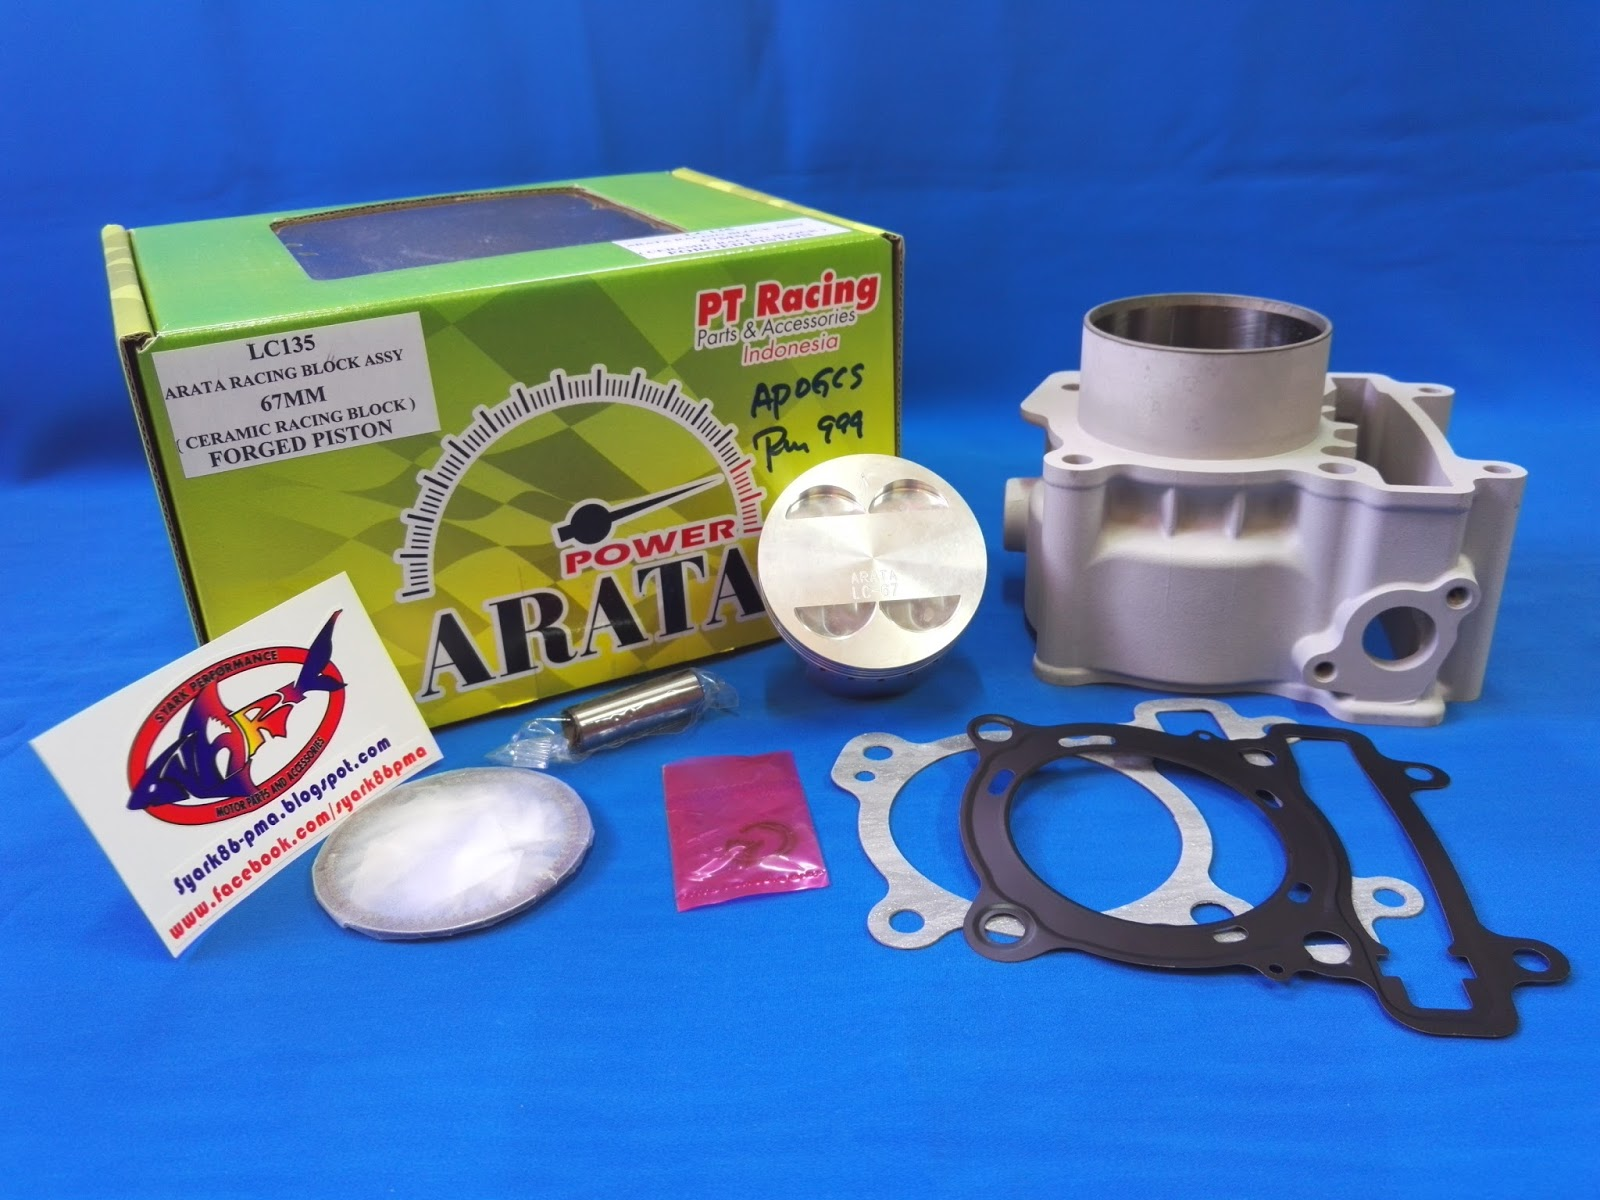 Syark Performance Motor Parts And Accessories Online Shop (Est